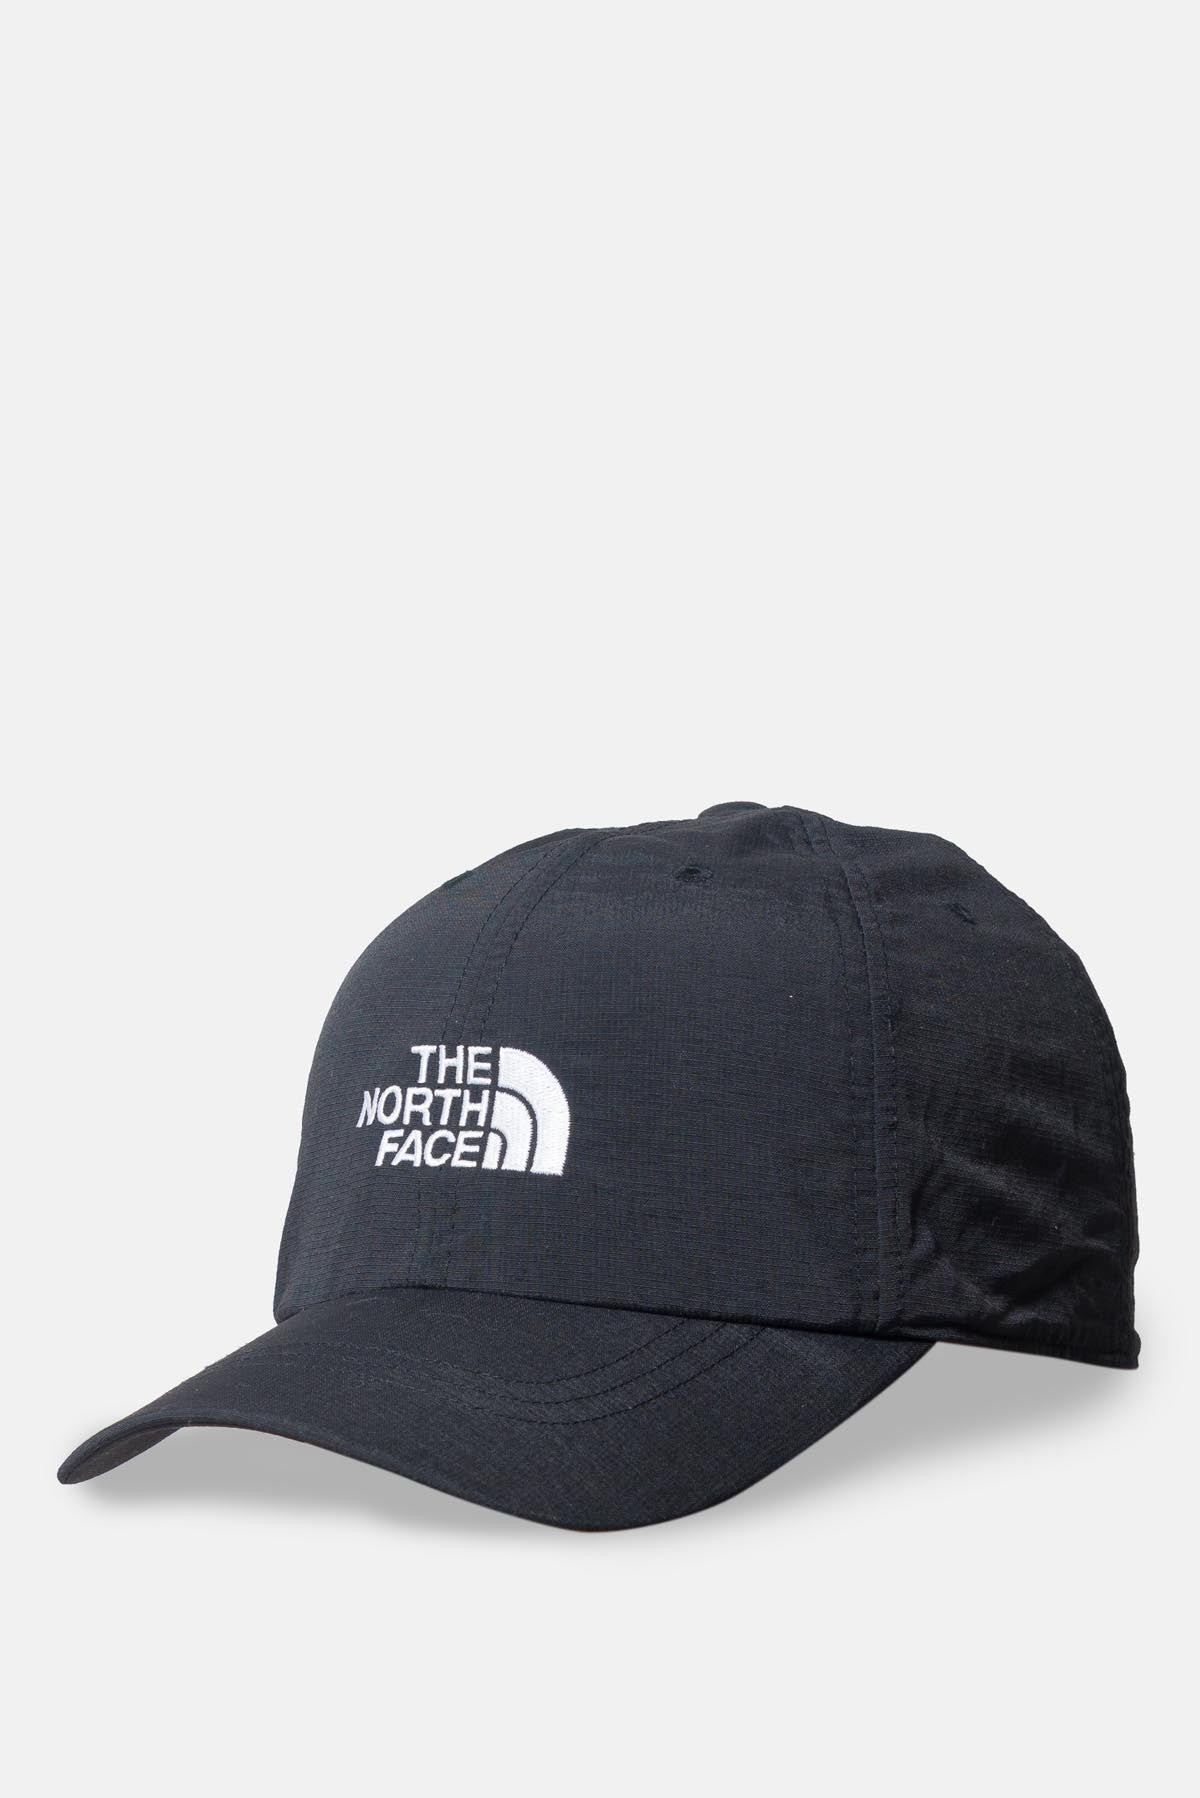 ee6e08a13ea North Face Horizon Ball Cap available from Priory